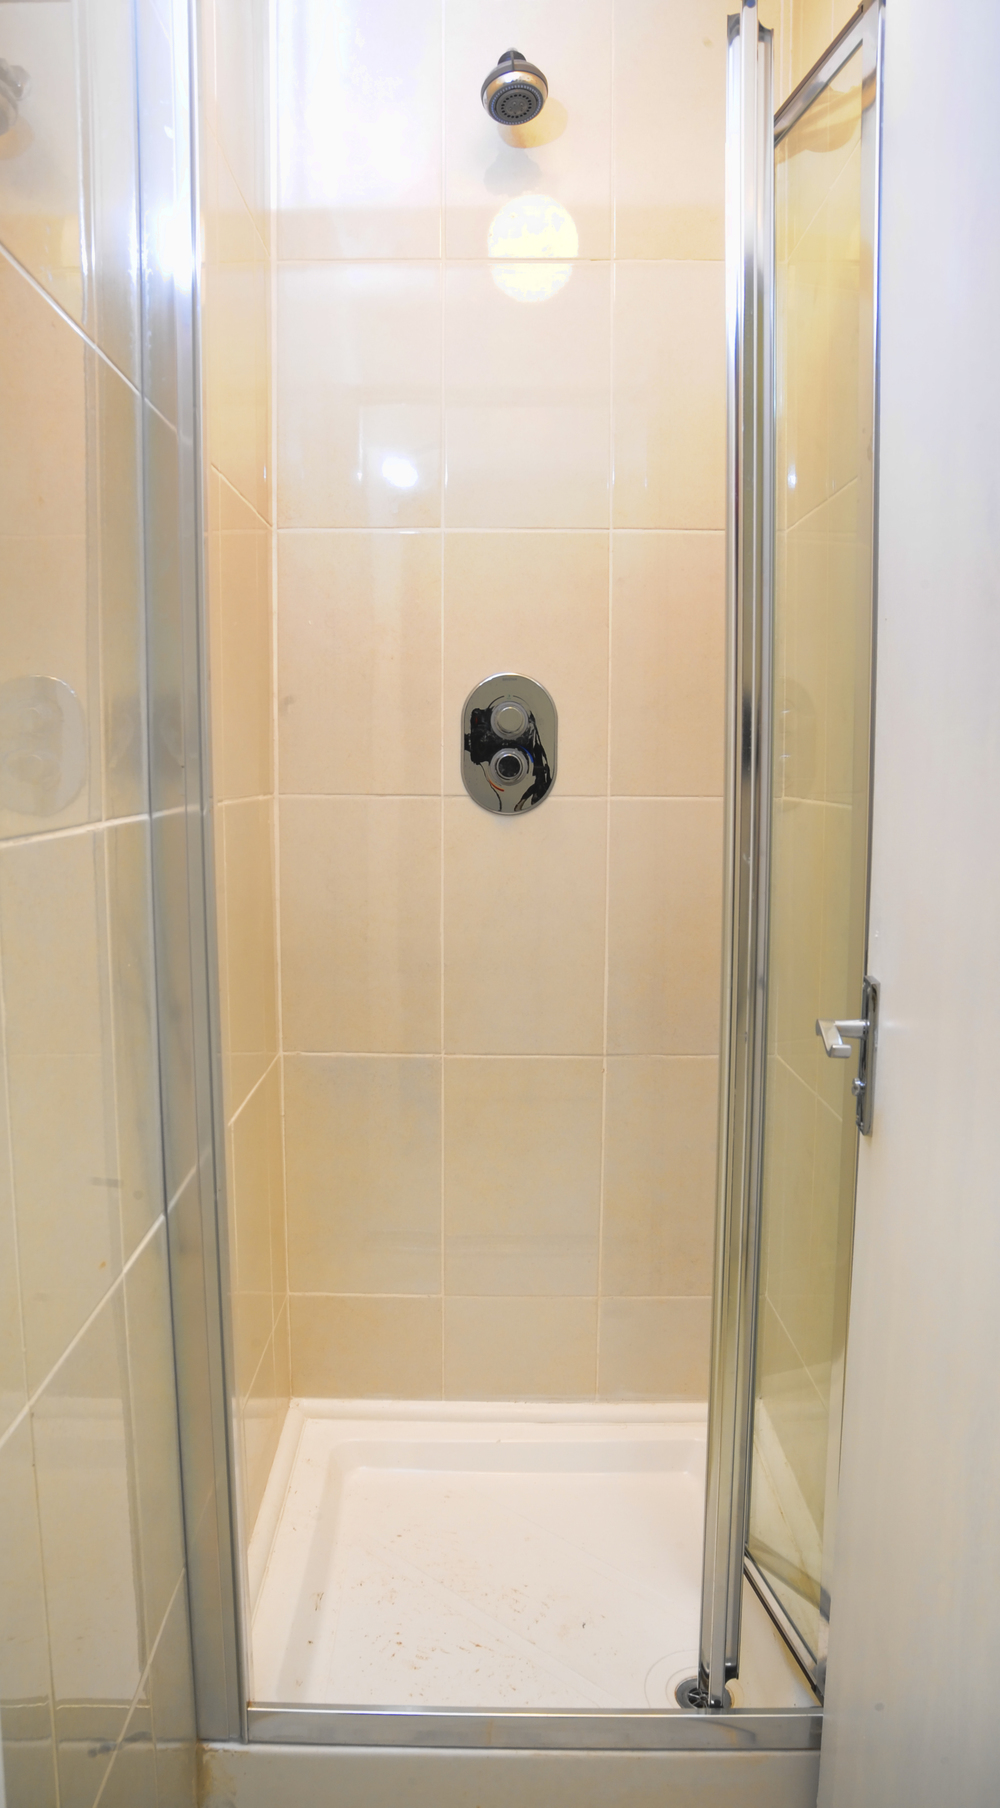 Our shower-rooms have temperature control and great water pressure and control.